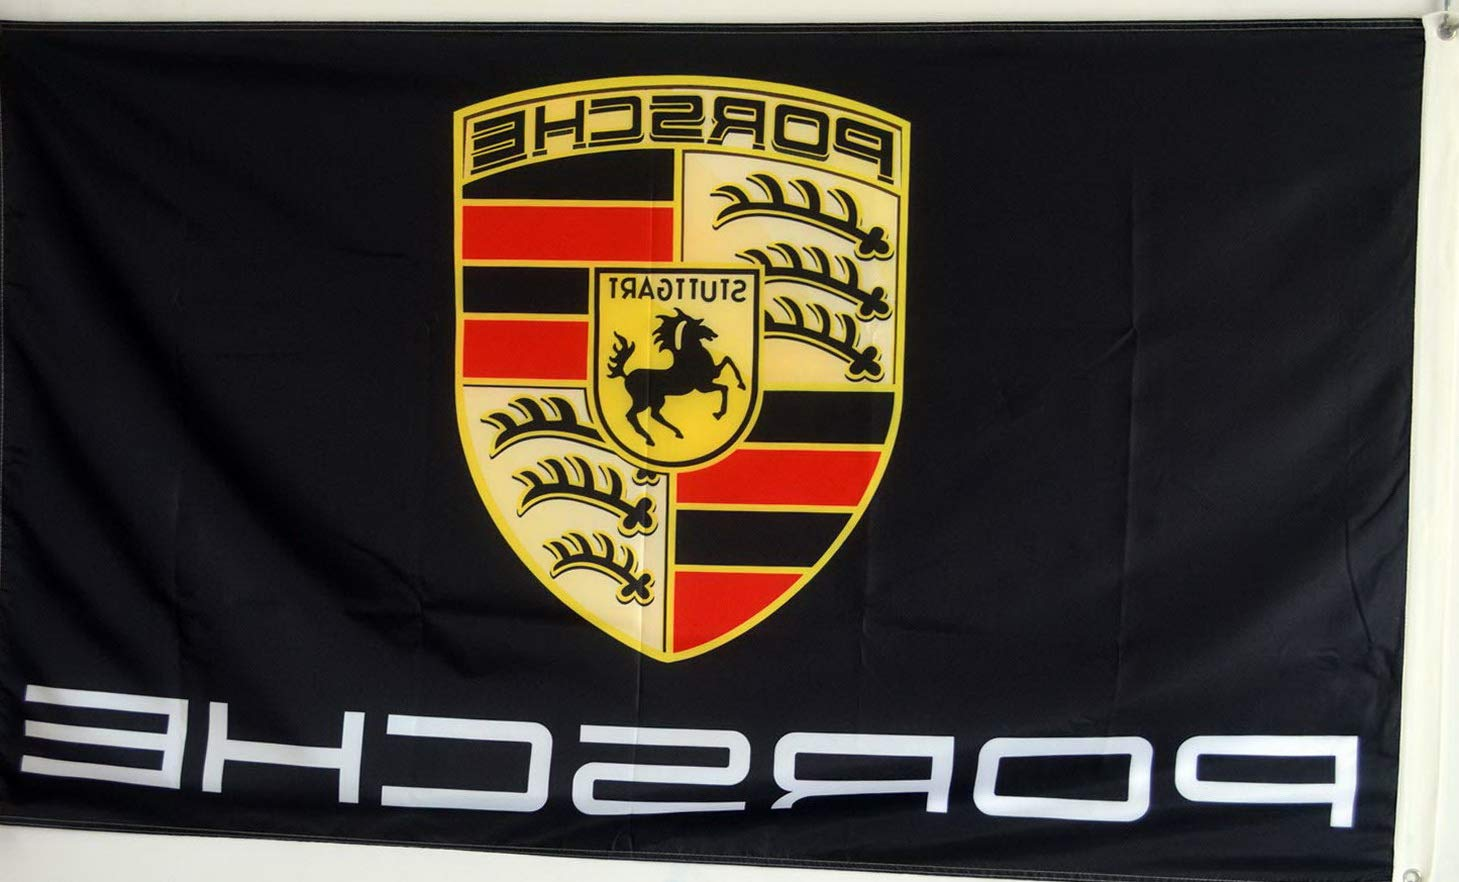 Werrox Annfly Porsche Flag Black High Performance Stuttgart 3X5FT Banner | Model FLG - 488 | by Werrox